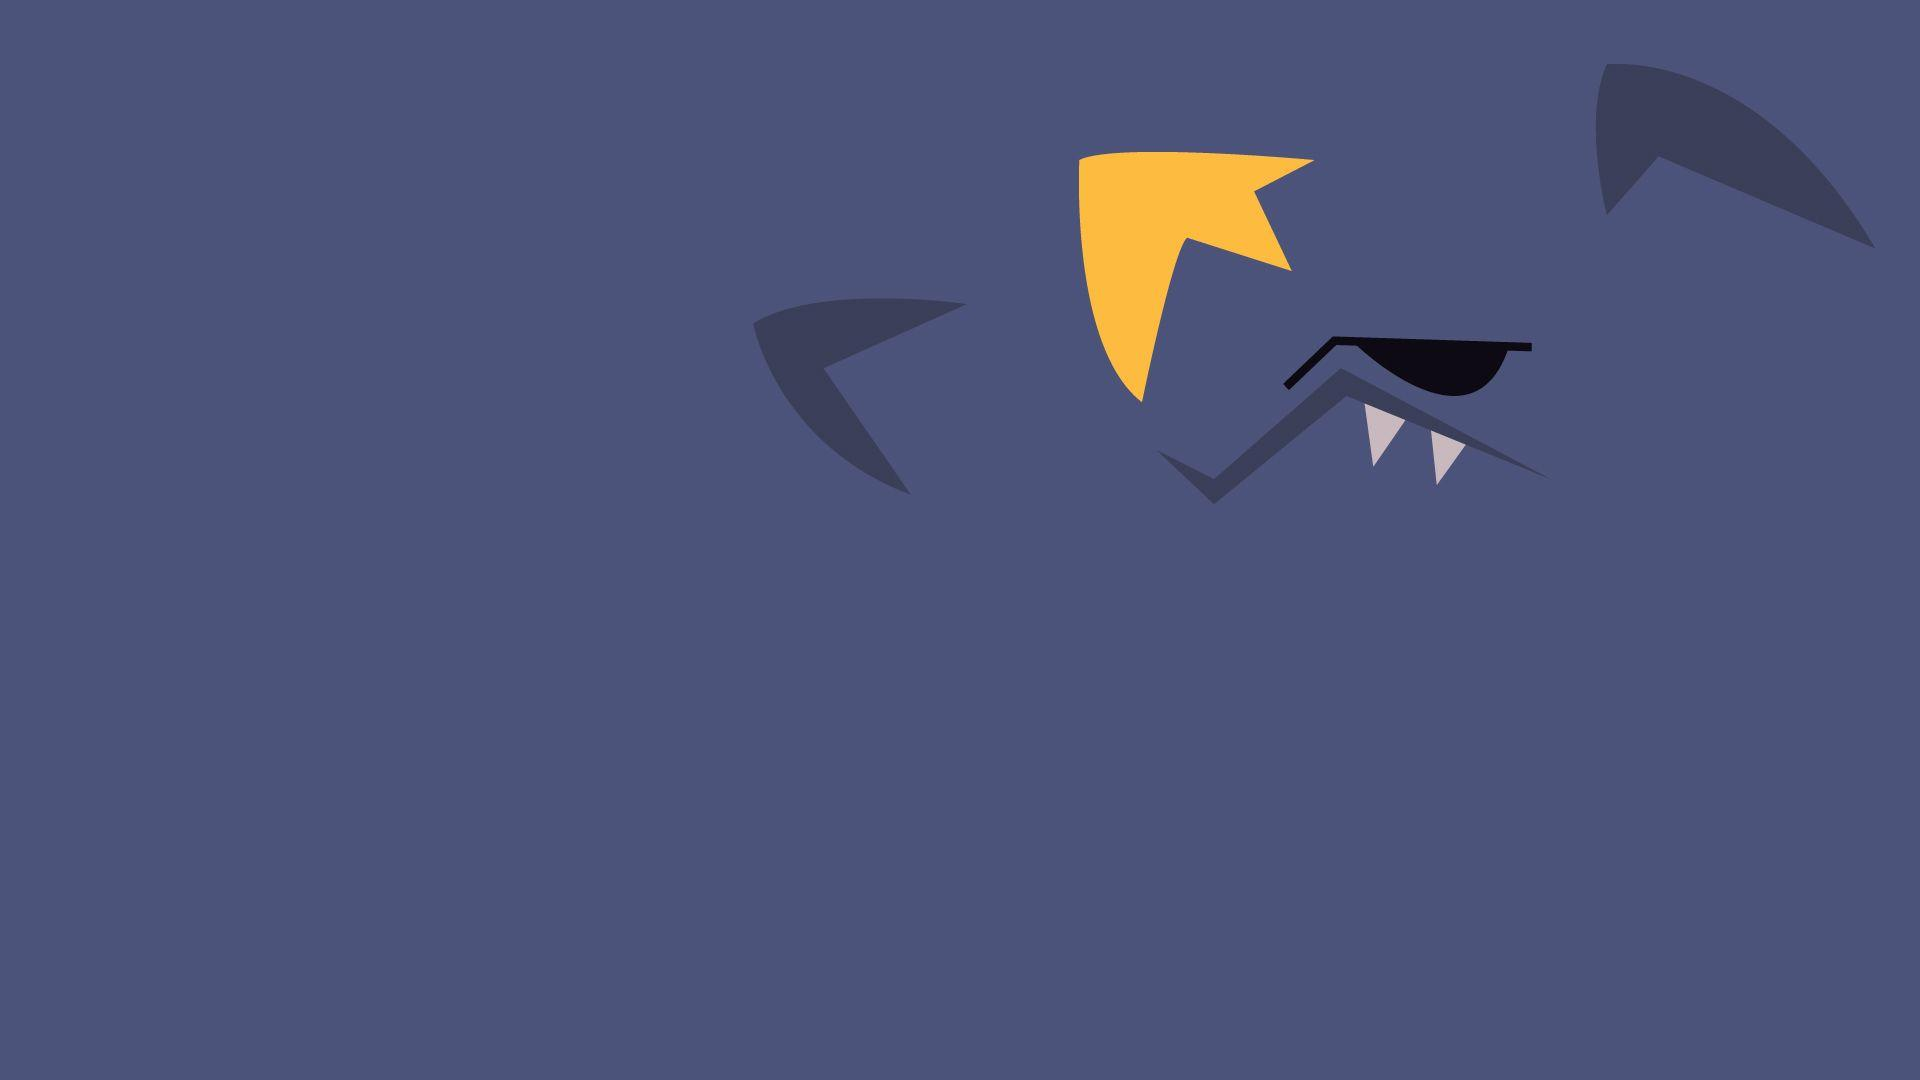 Garchomp Wallpapers, 100% Quality Garchomp HD Pics HQFX Pics